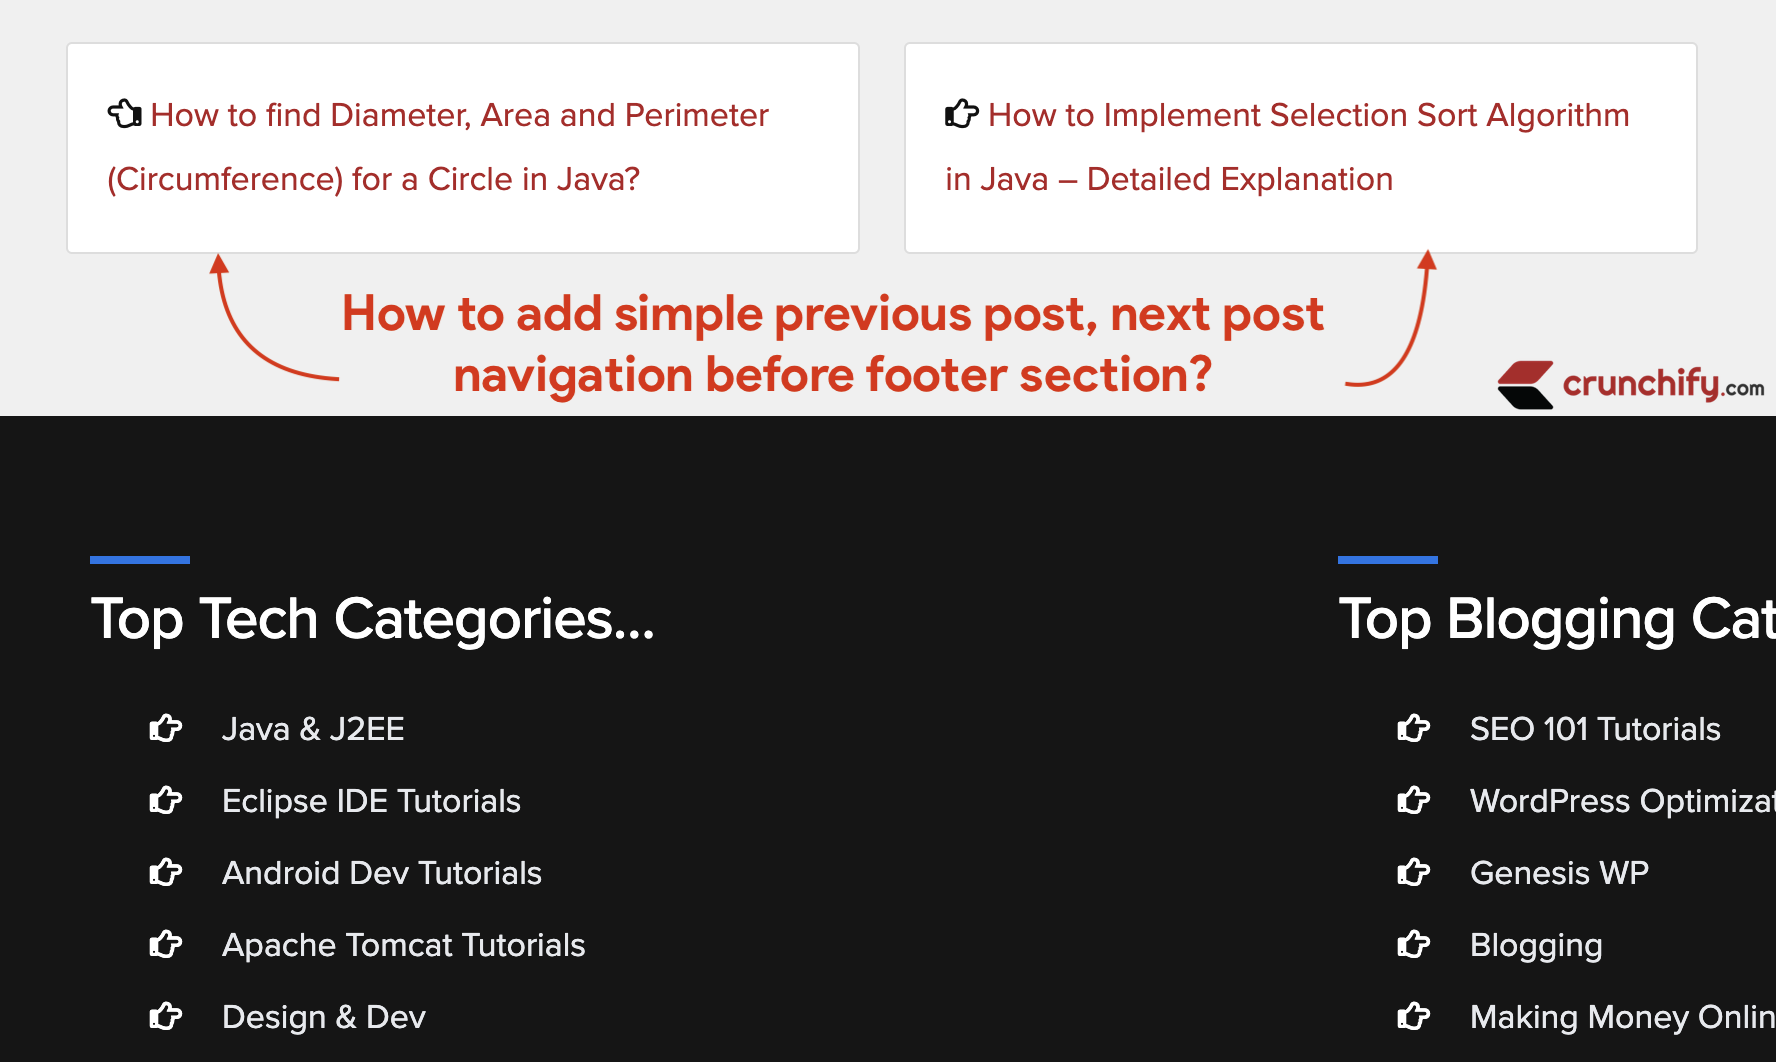 How to add simple previous post, next post navigation before footer section?